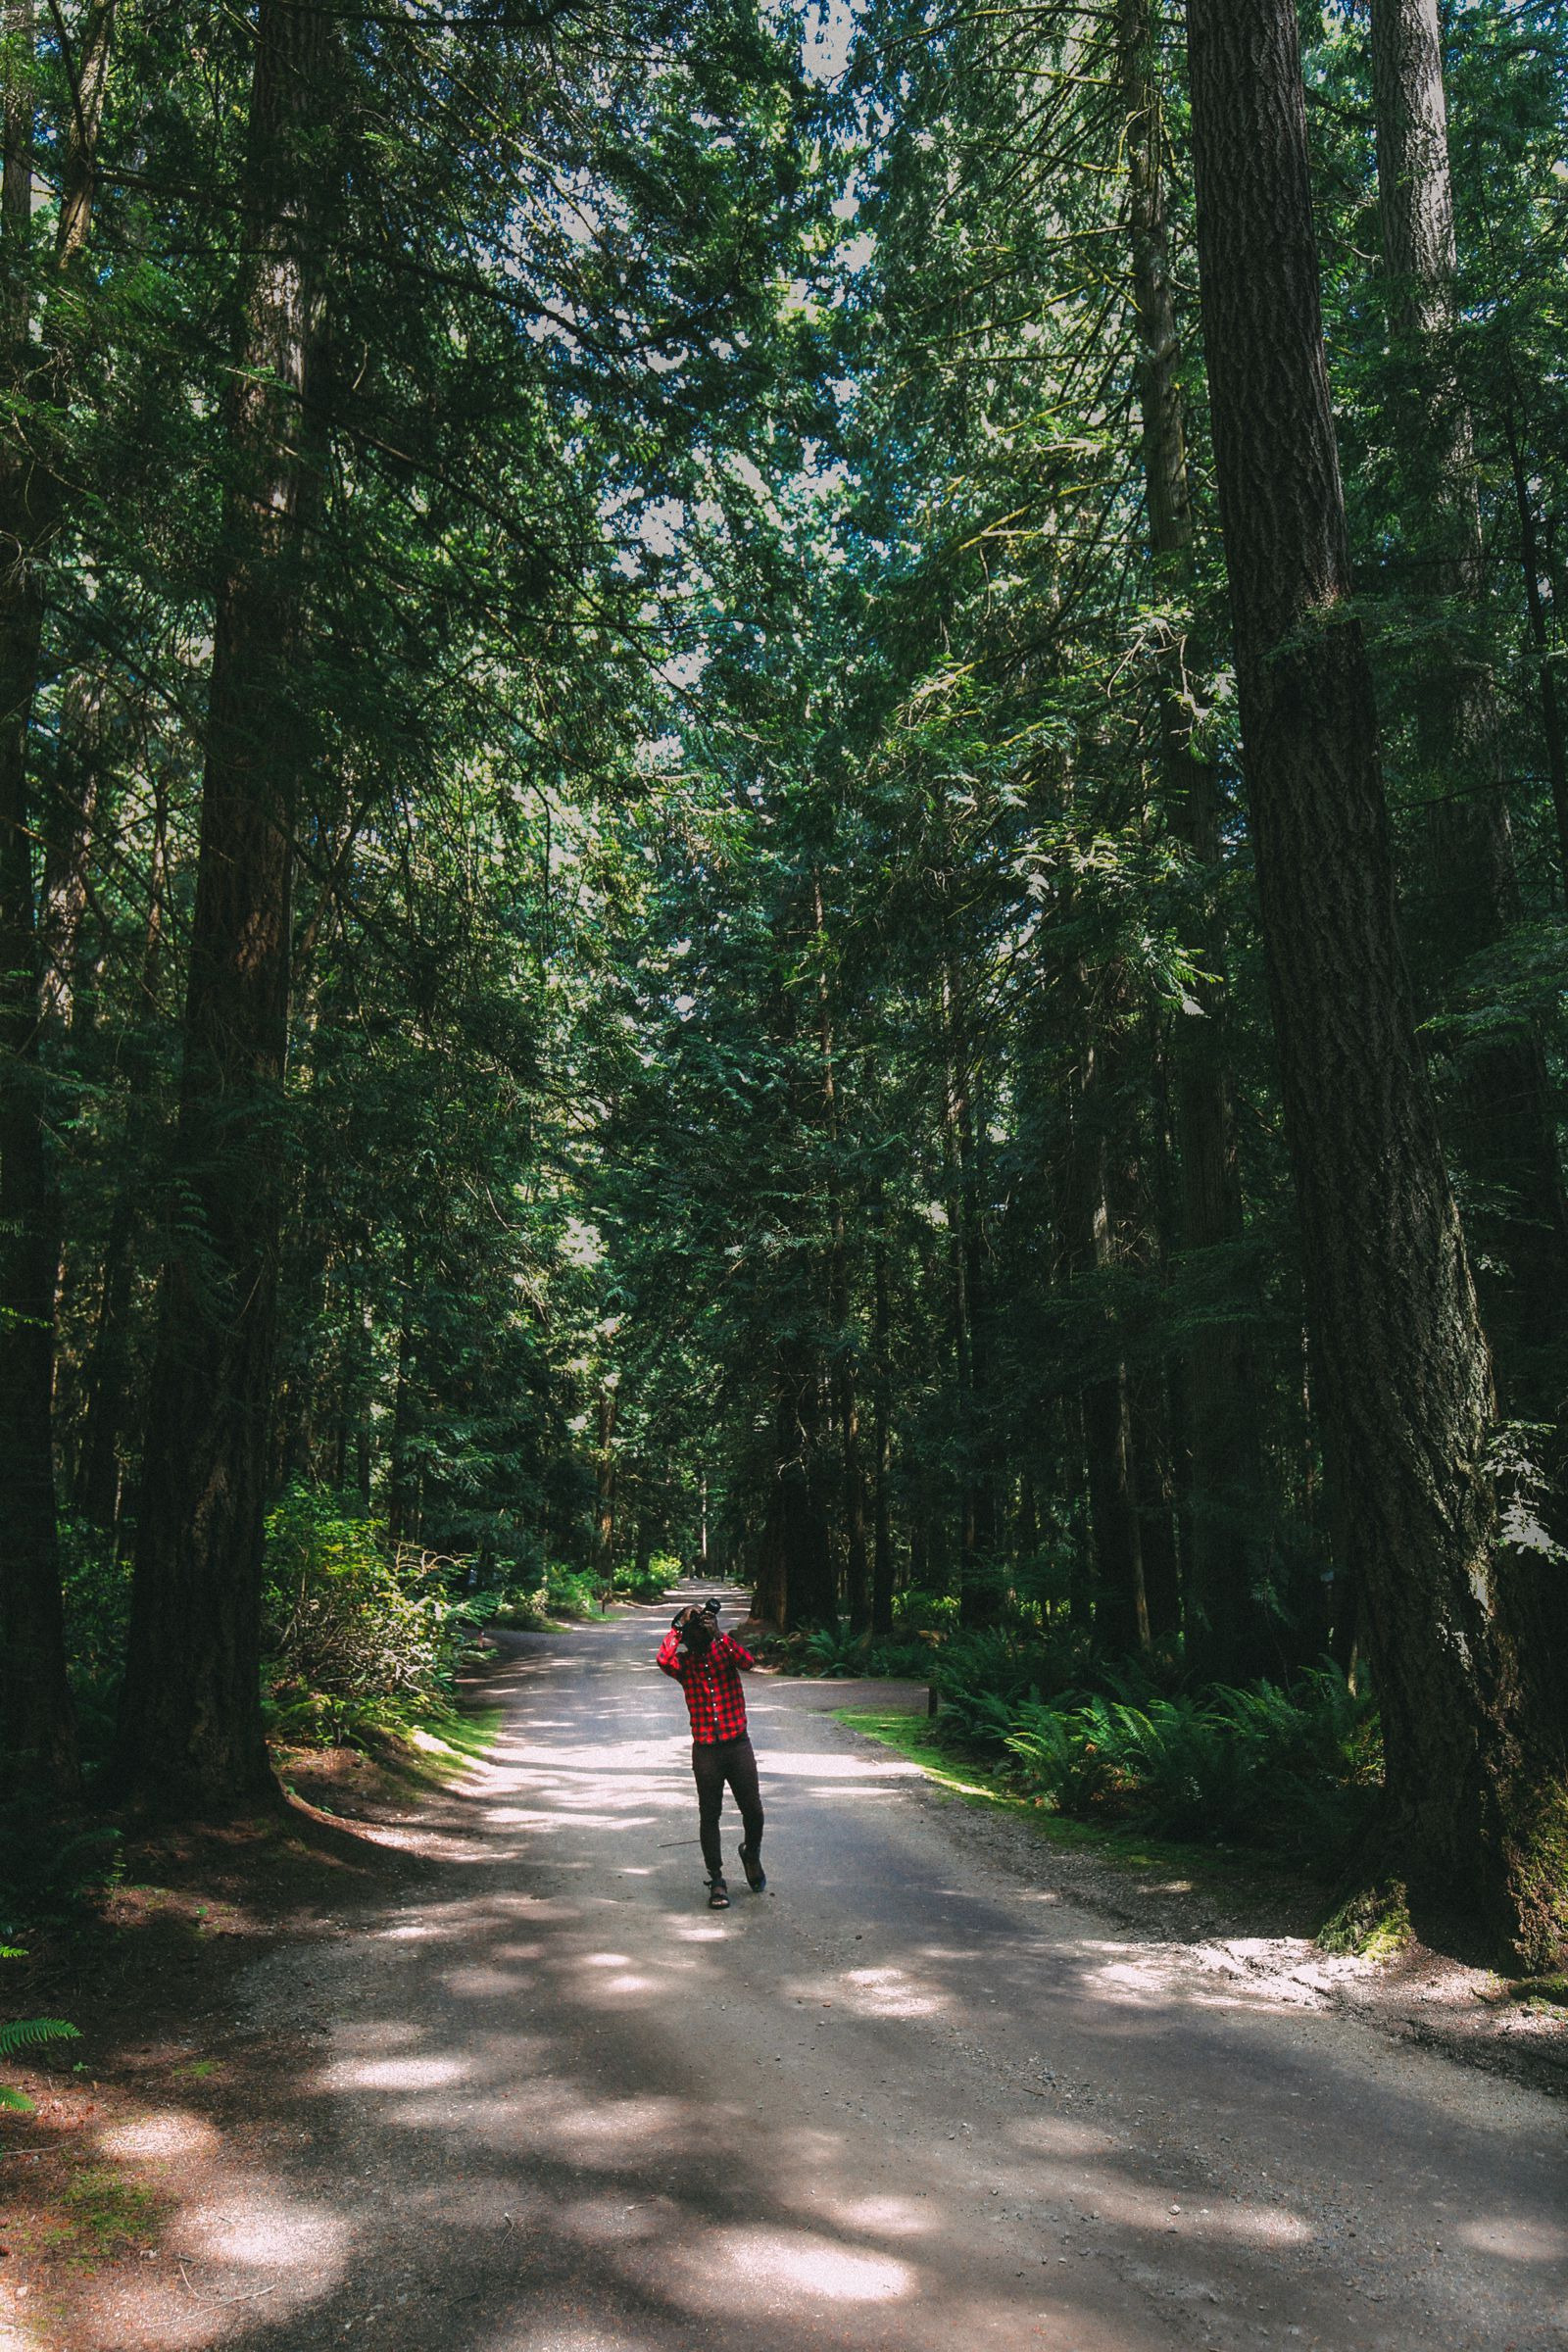 Photos And Postcards From Vancouver, Whistler, Squamish And The Sunshine Coast... In British Columbia, Canada (19)